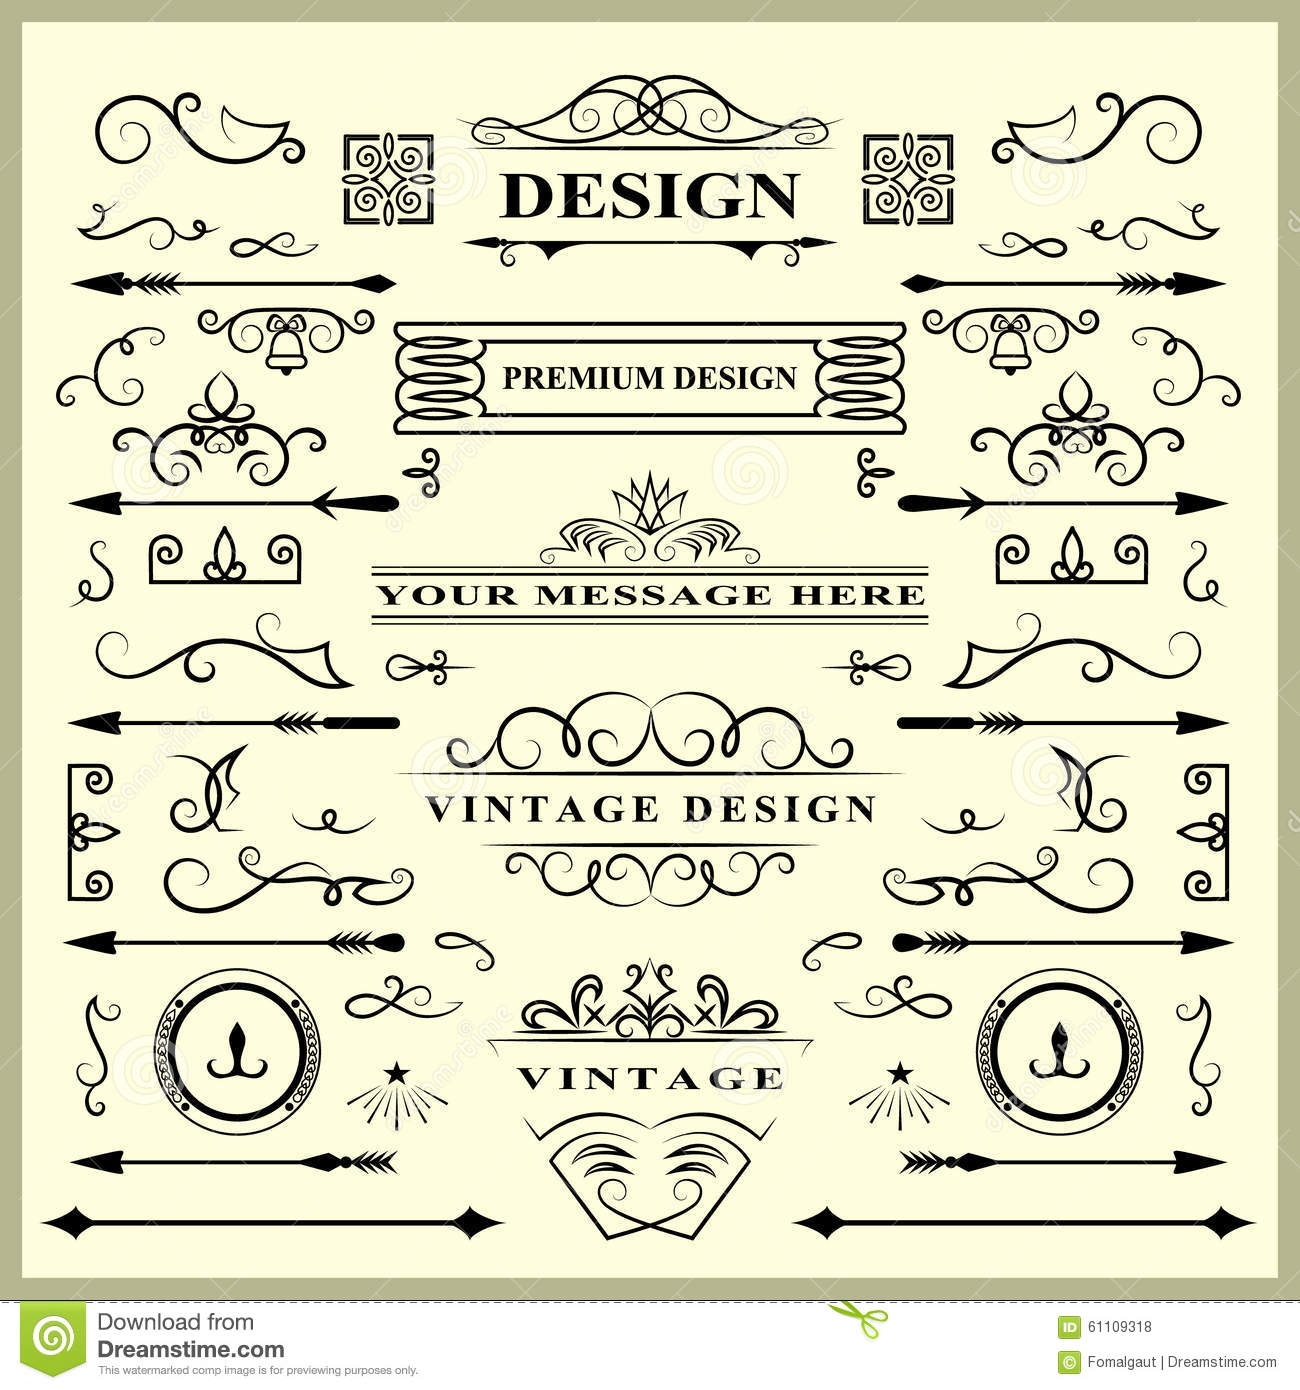 Set of Vintage Decorations Elements. Flourishes Calligraphic Ornaments and Frames. Retro Style Design Collection for Invitations,